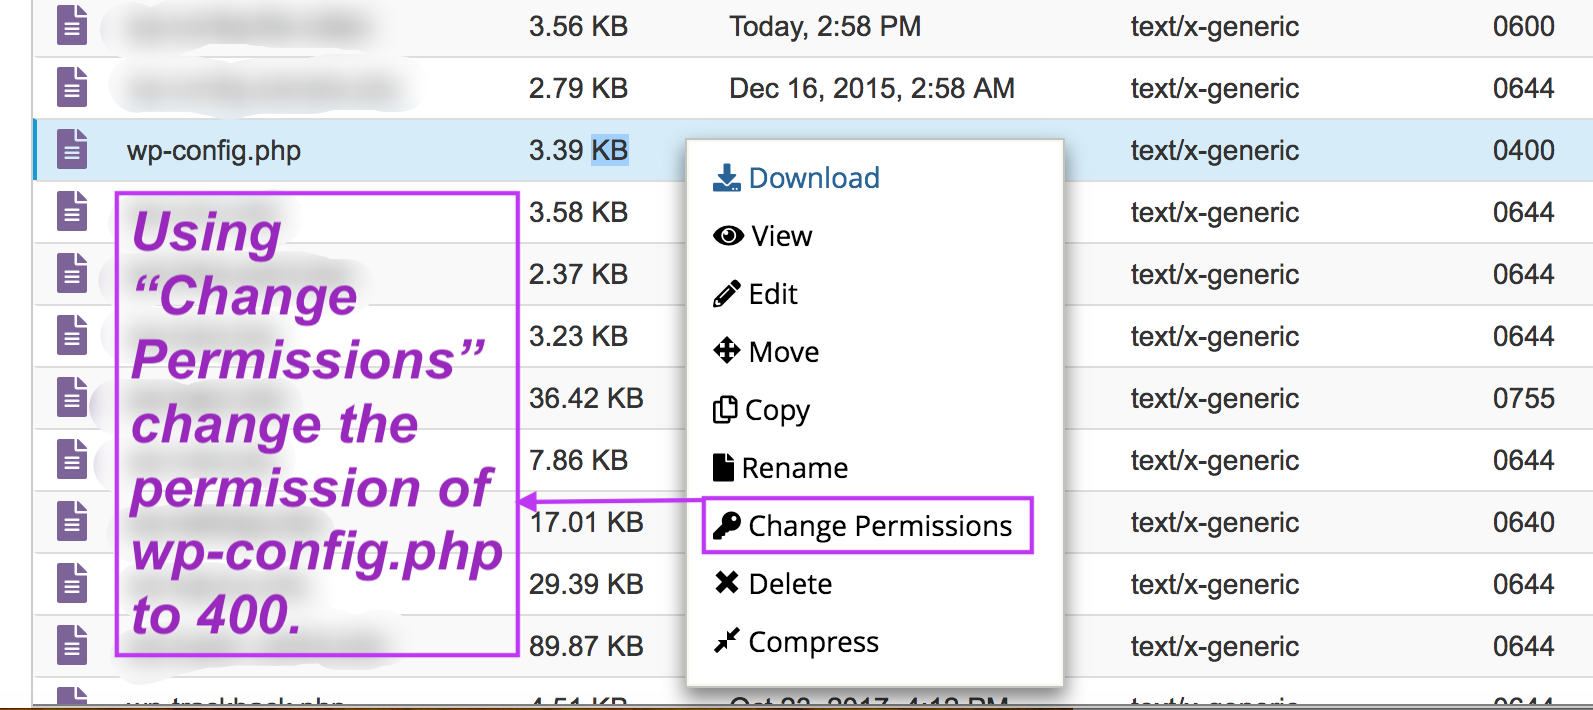 Changing access permission of a file. #ChangePermission